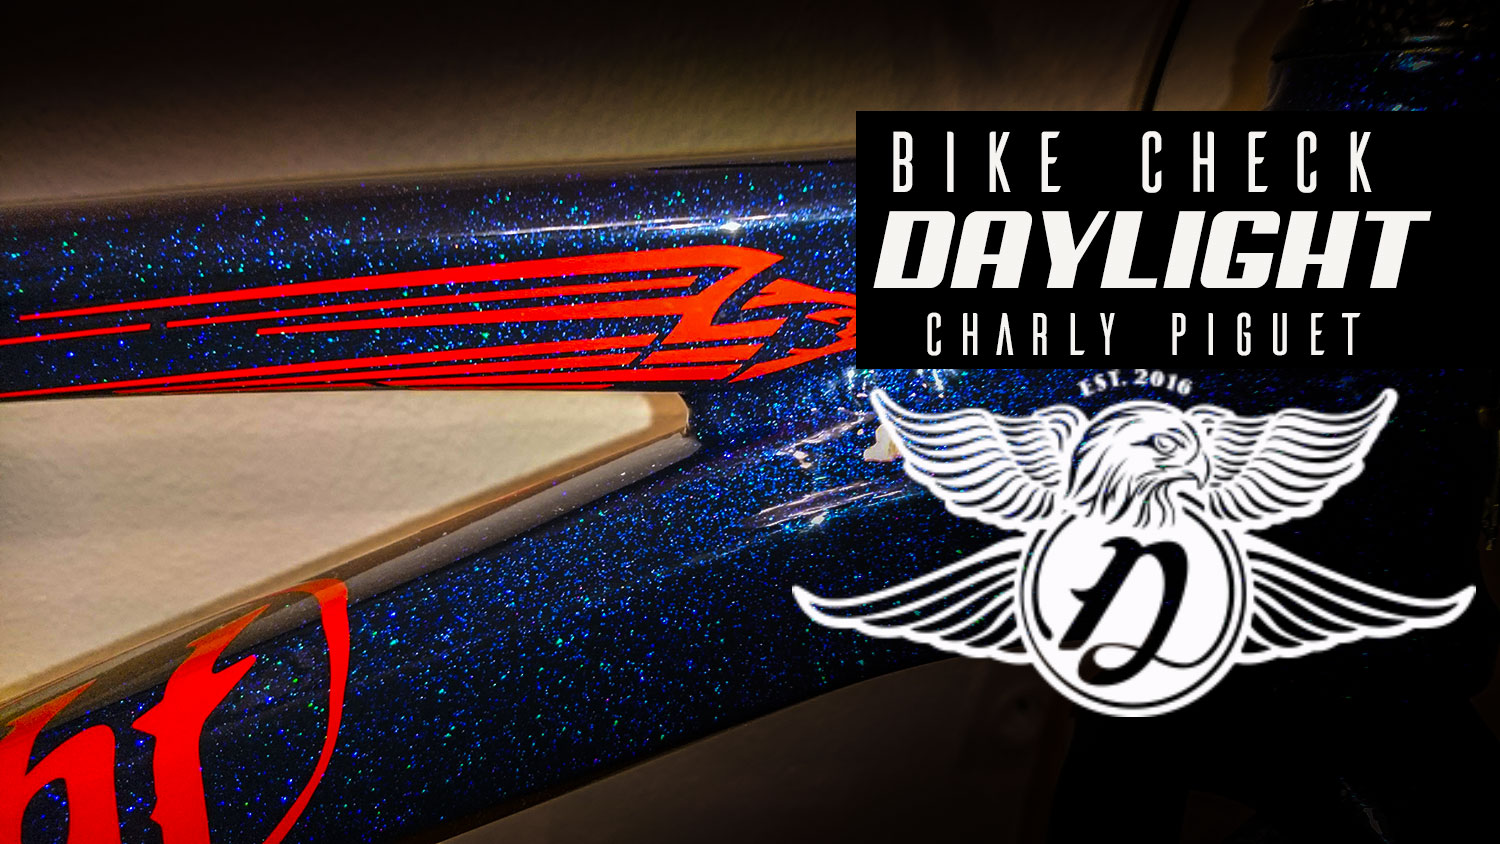 Bike Check DAYLIGHT Pro XL Custom Charly Piguet